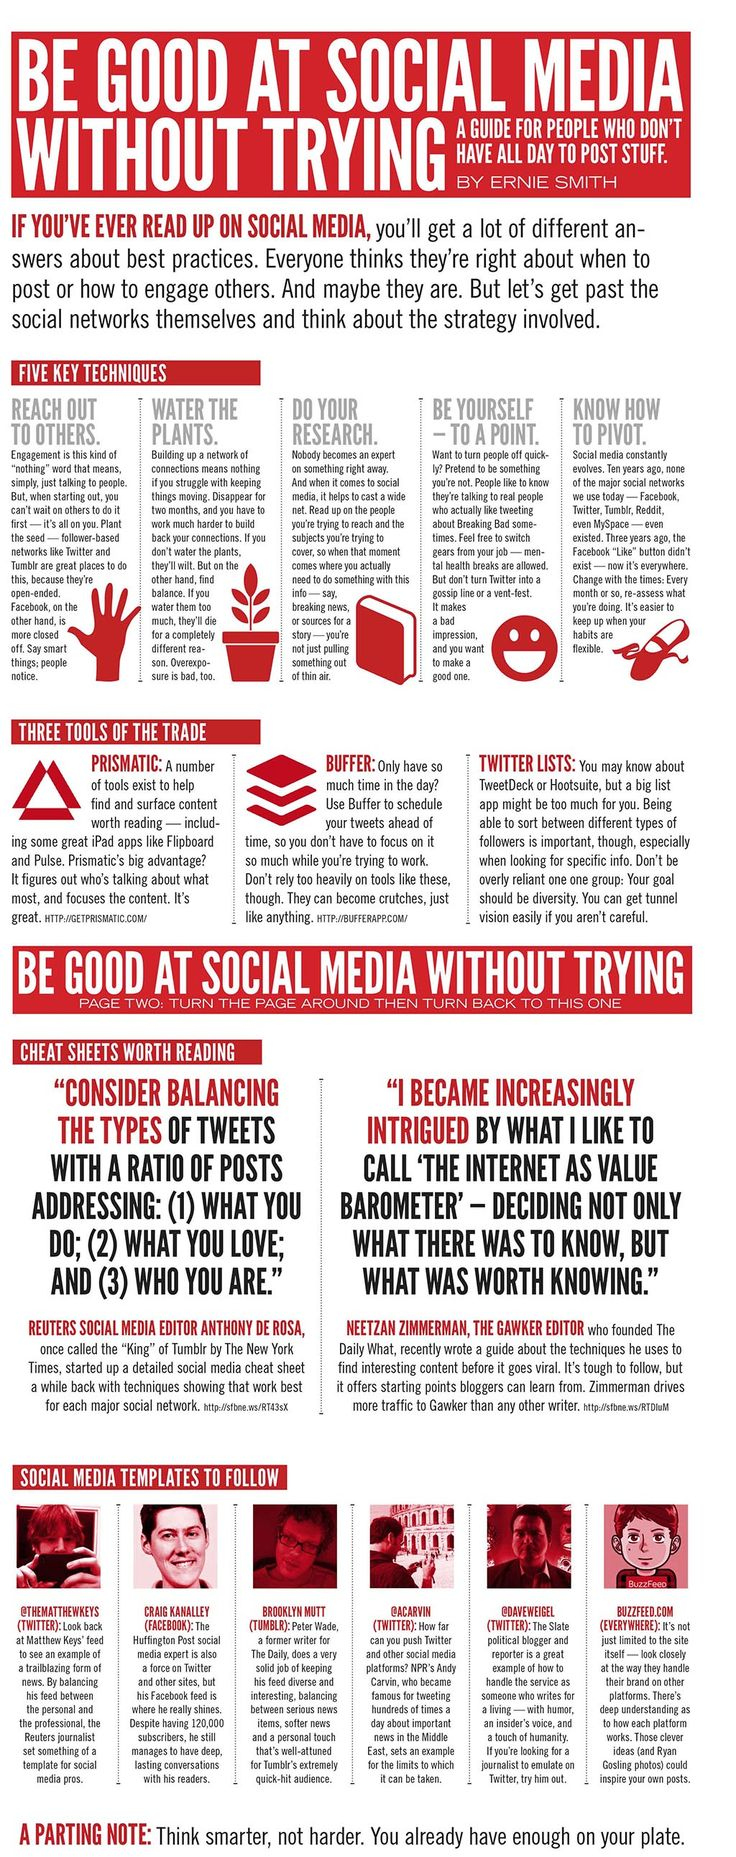 A busy person's guide to social media. Remember though that social media does take time, so don't only really on this infographic (you need time to create or find content and you need to spend time on each platform) http://www.intelisystems.com